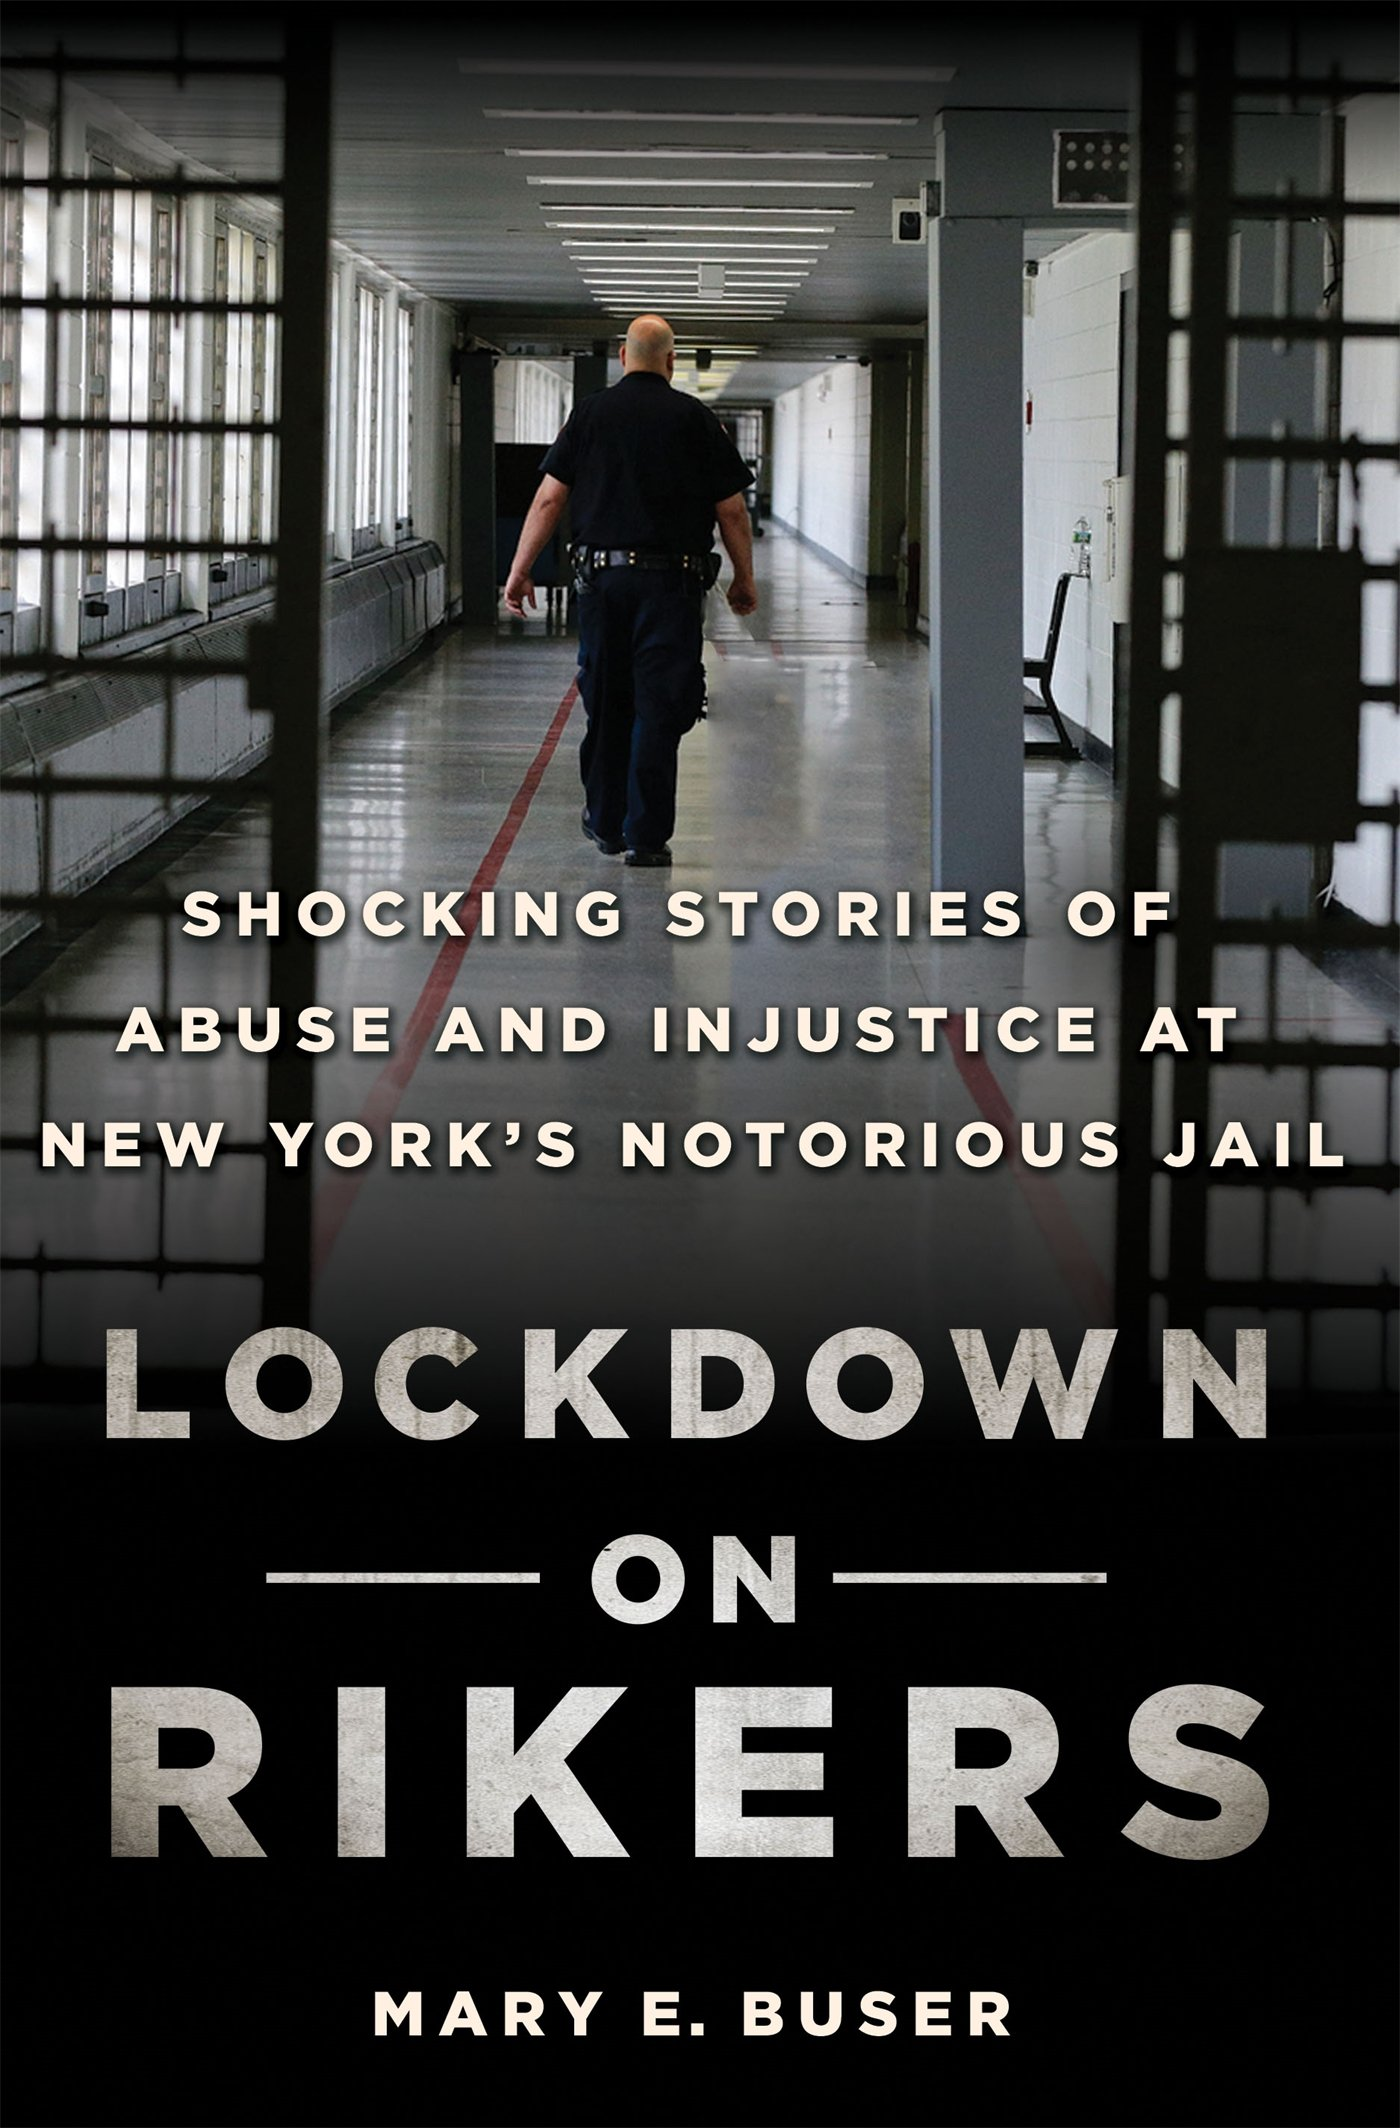 Lockdown on Rikers: Shocking Stories of Abuse and Injustice at New